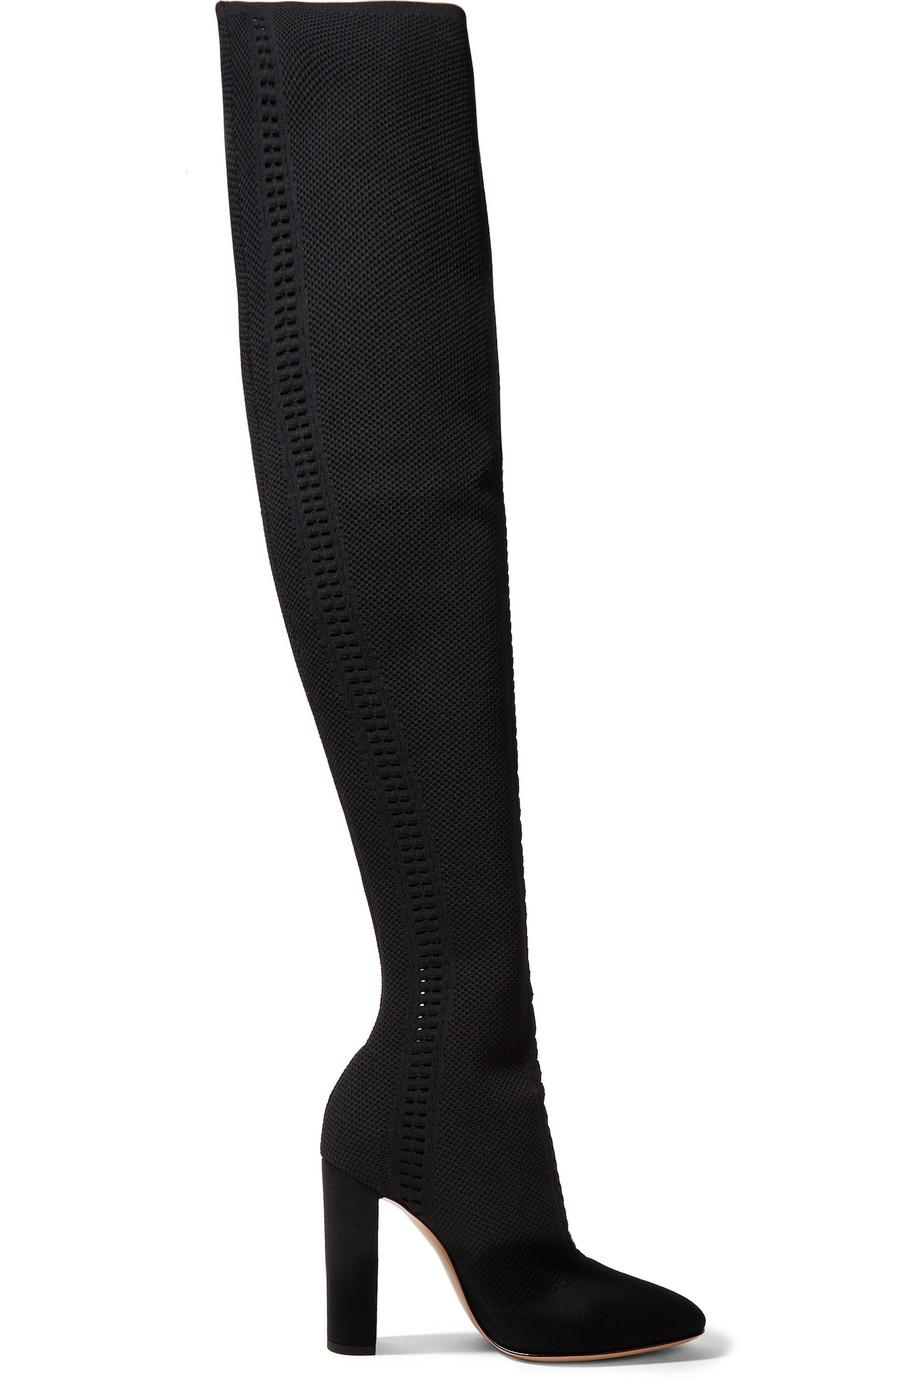 Gianvito Rossi Knitted over-the-knee boots outlet 100% authentic outlet deals AtC41R